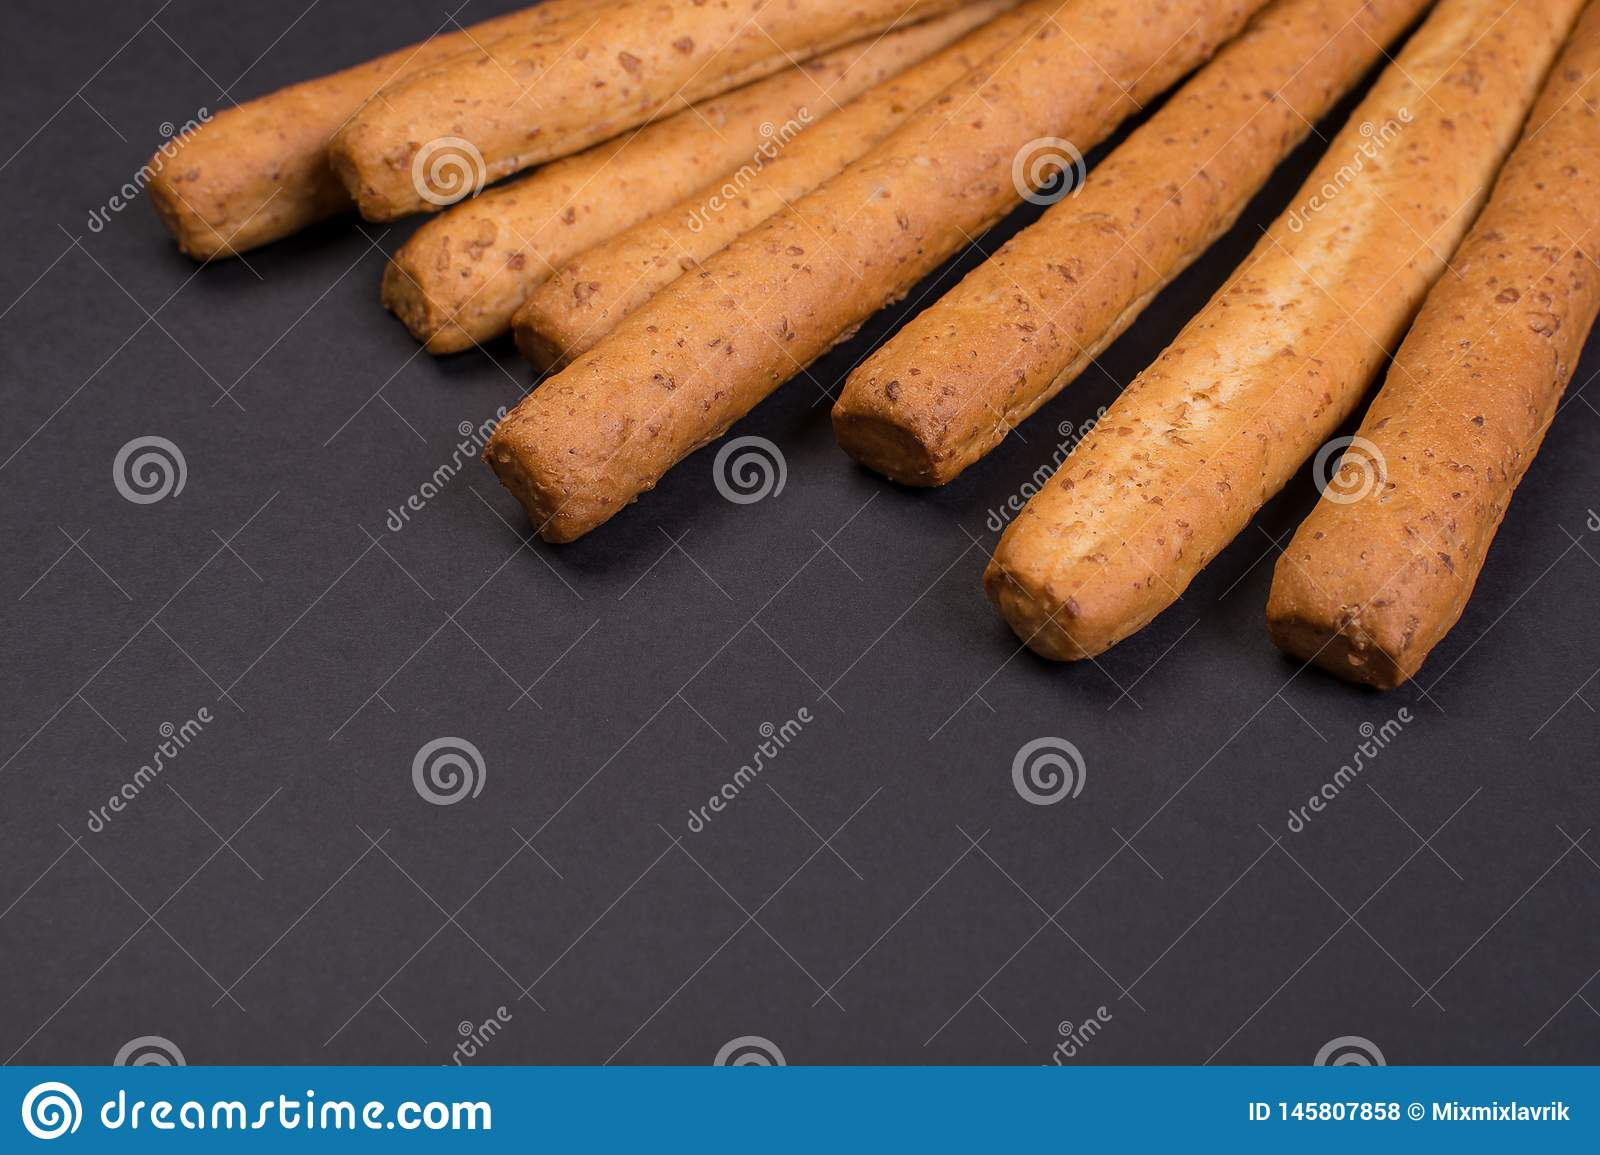 Crispy bread sticks